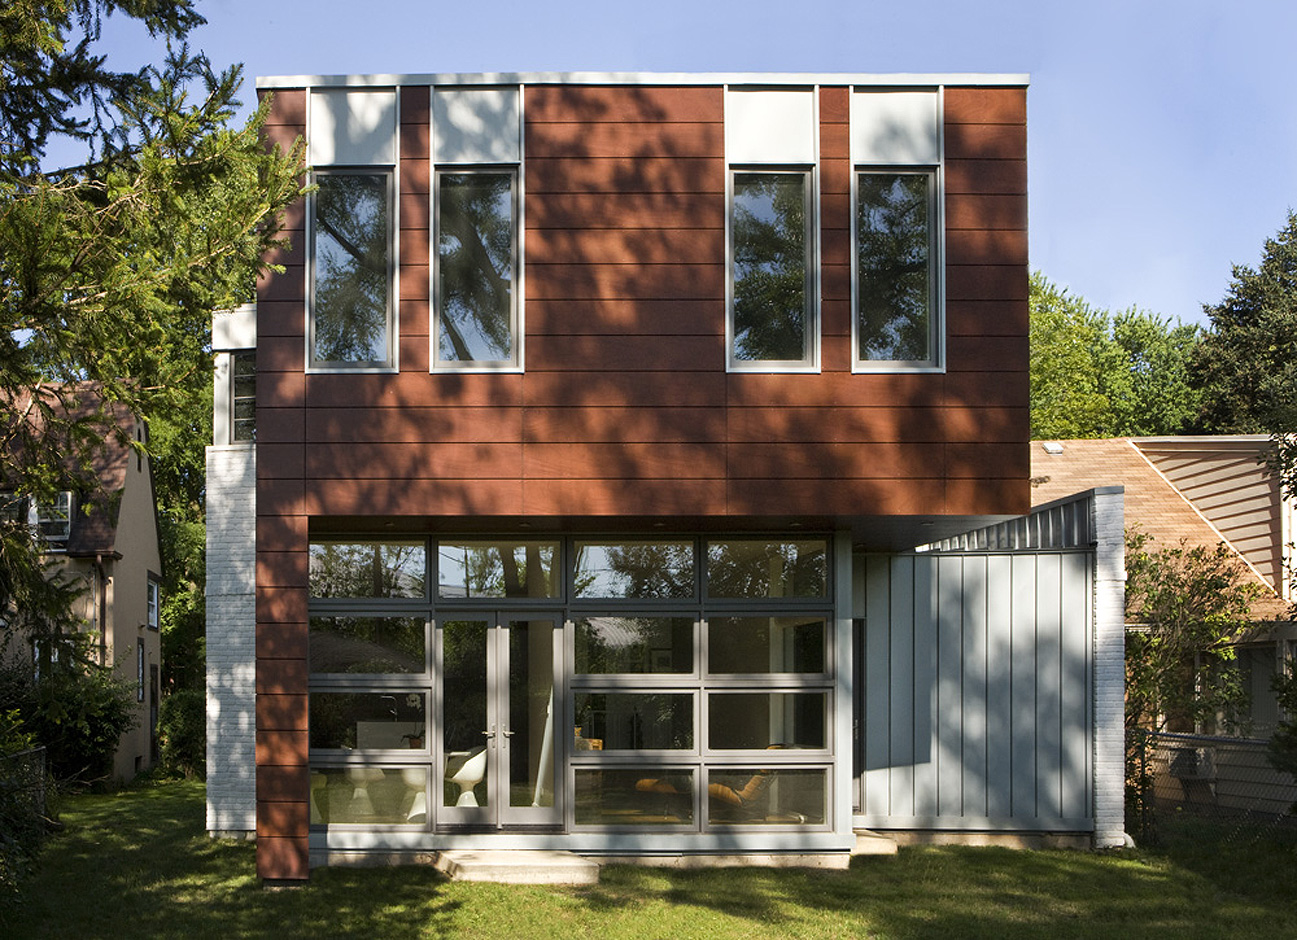 Massey Associates Architects design portfolio Suburban Transformation Evanston, Illinois